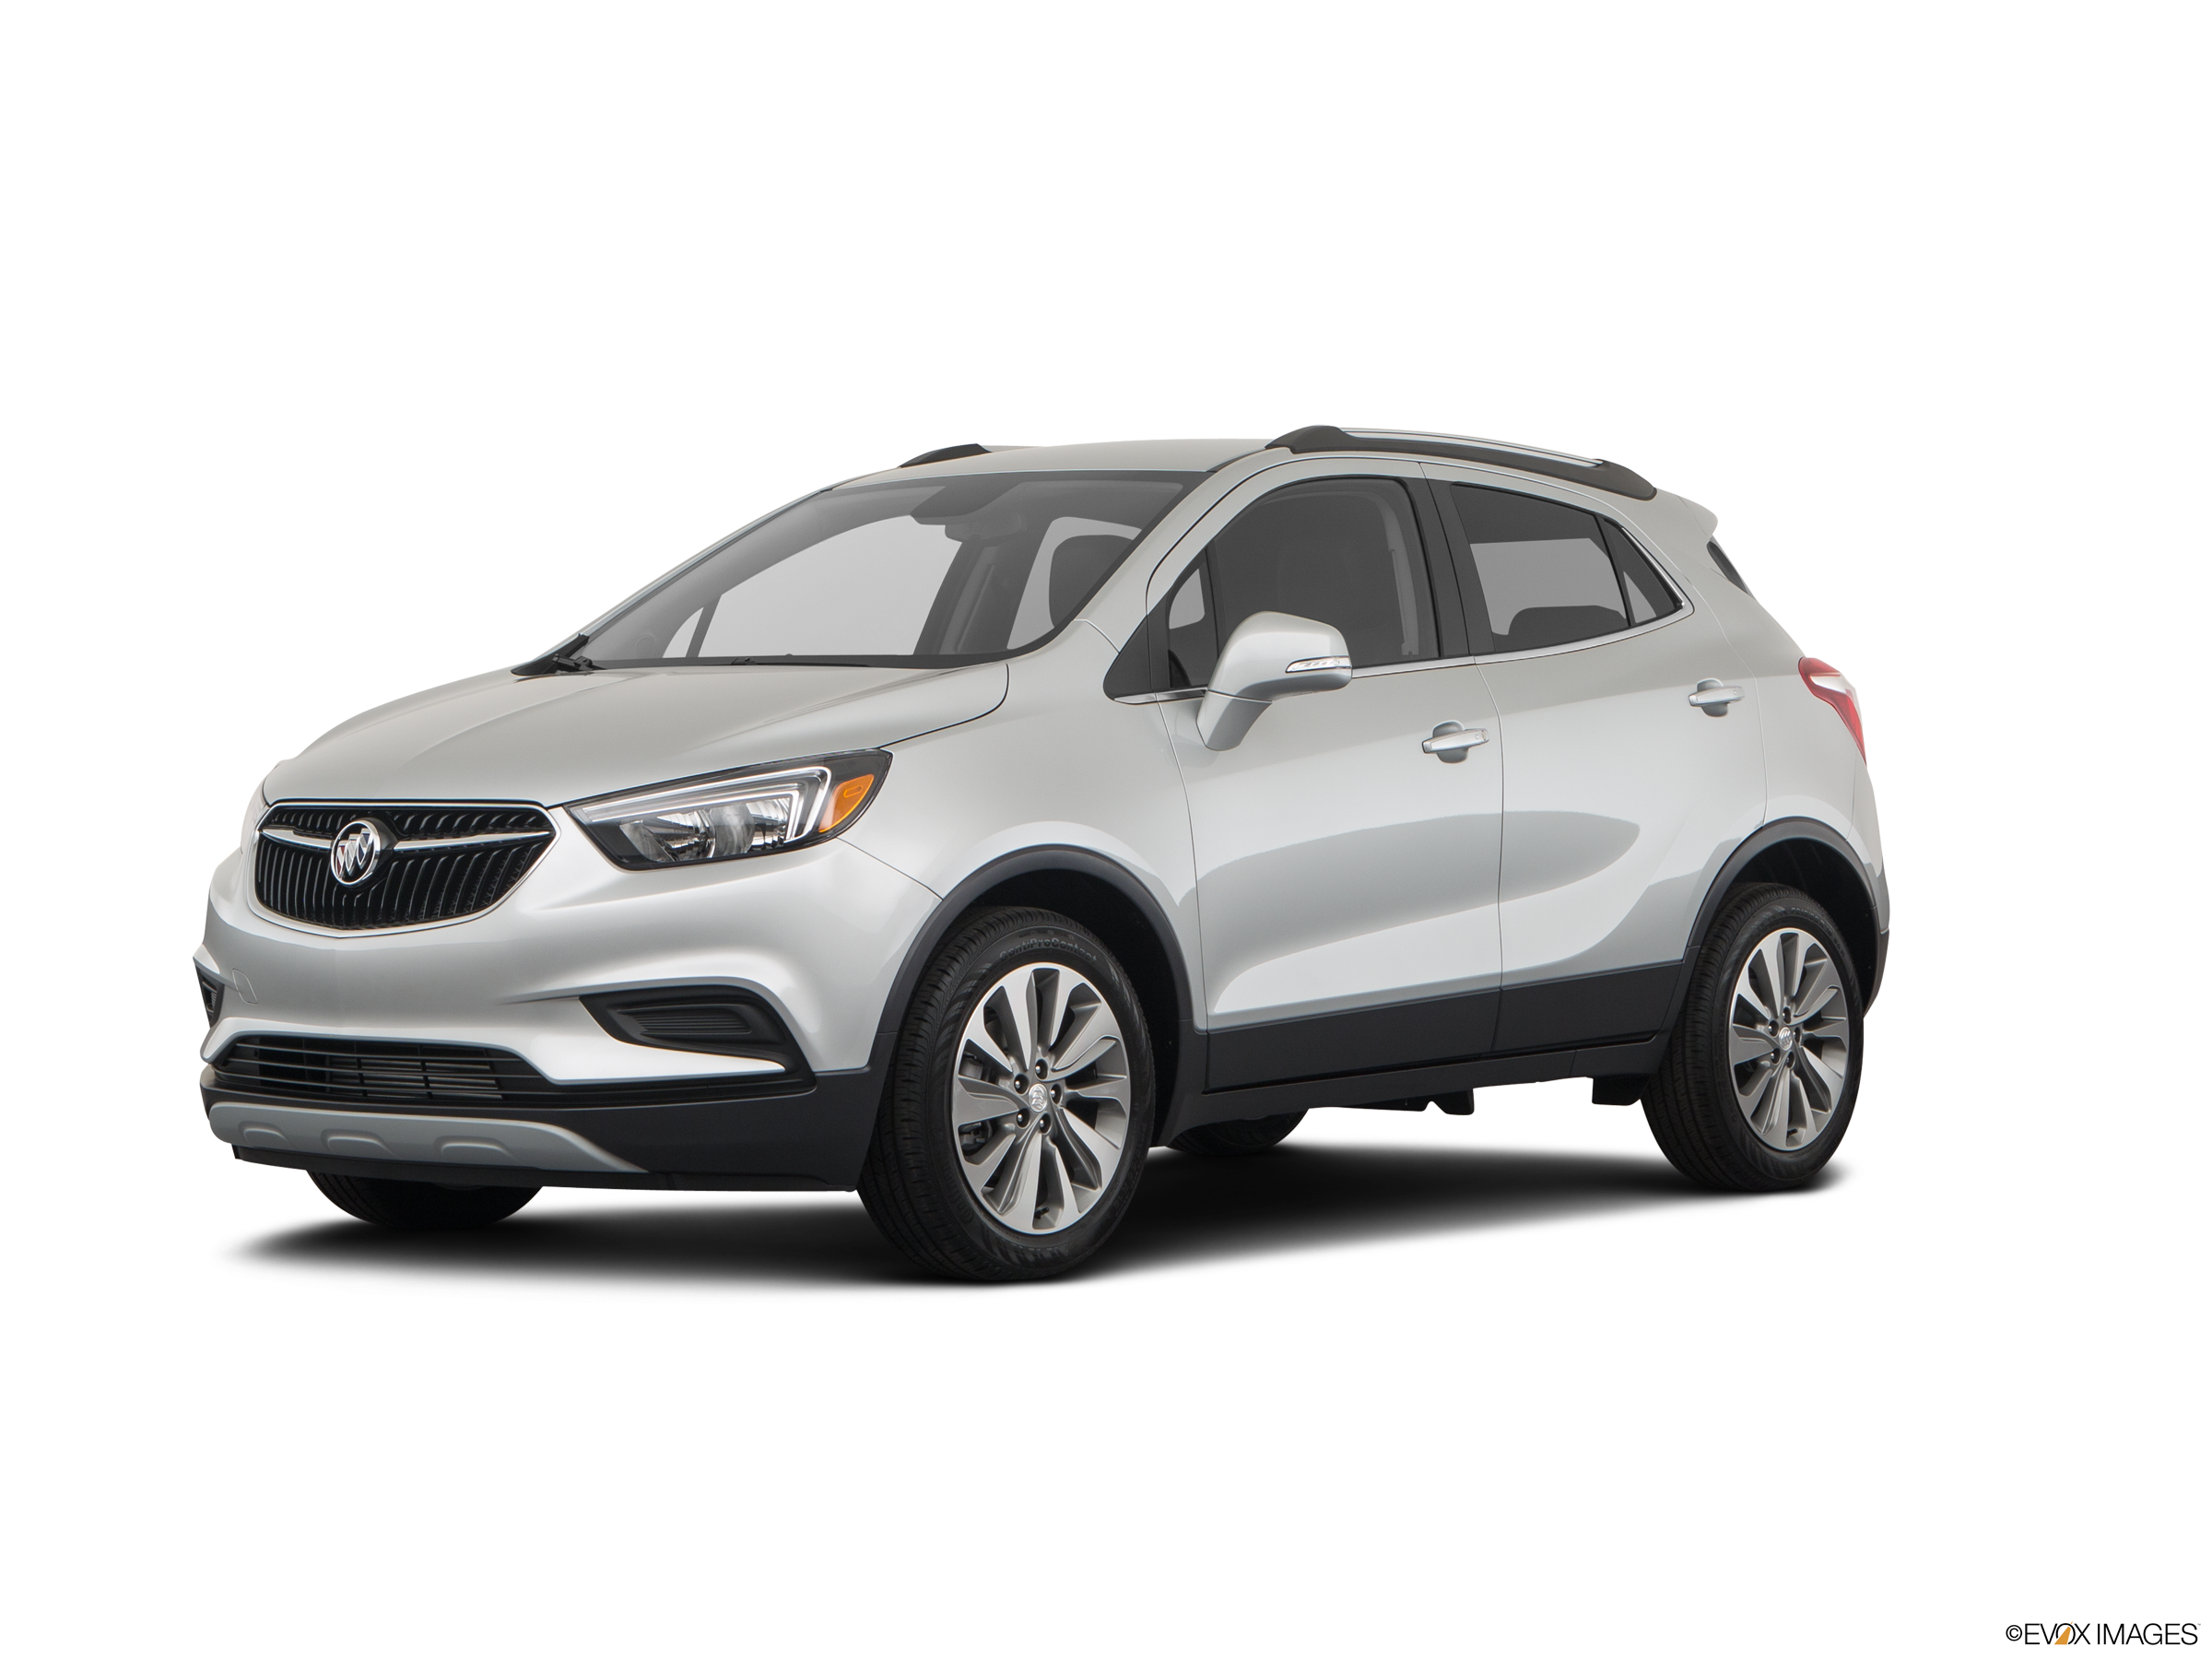 2020 Buick Encore Gx To Start At 26 098 In Canada Motor Illustrated